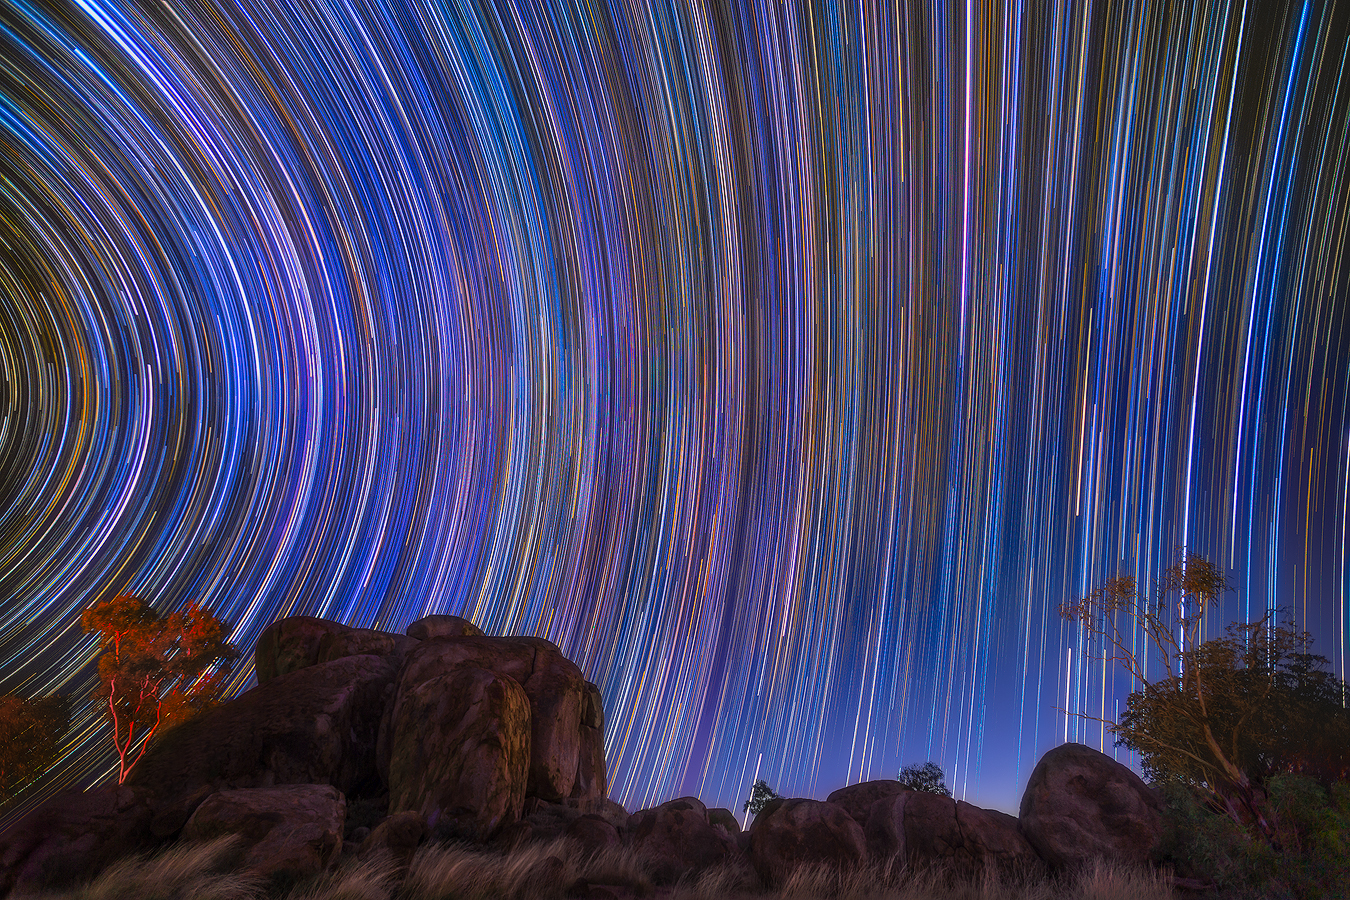 Star Trail - The Devils Dancing at Night at Devils Marbles near Tennant Creek, Australia | We Are Raw Photography Tours